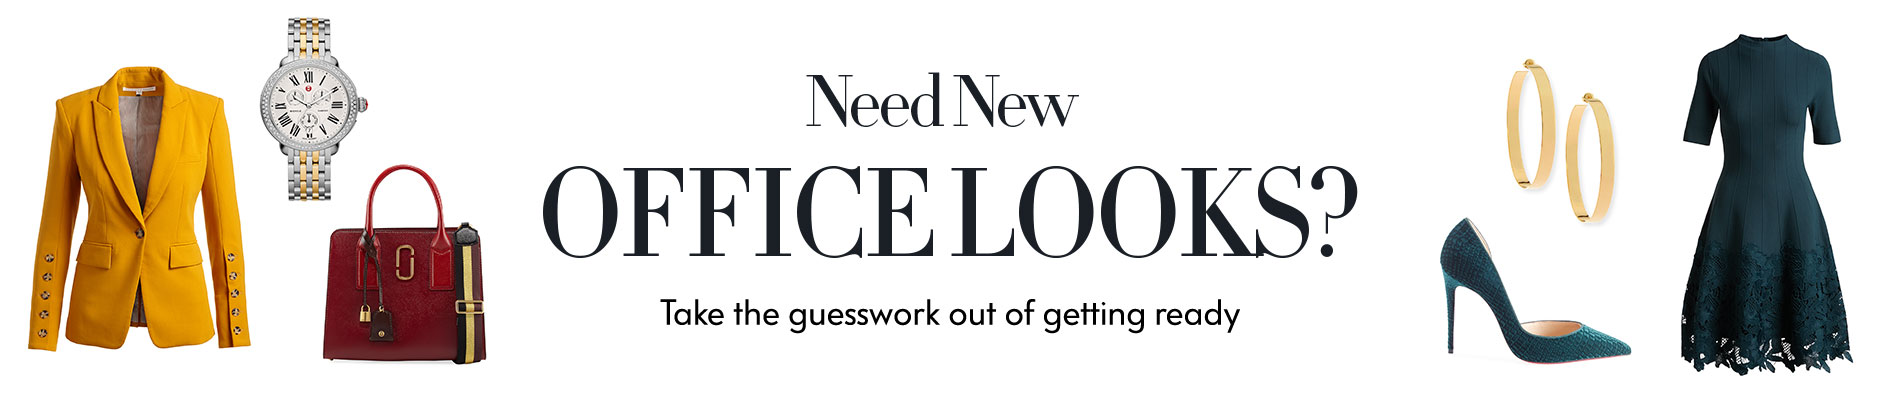 Need new office looks? Take the guesswork out of getting ready